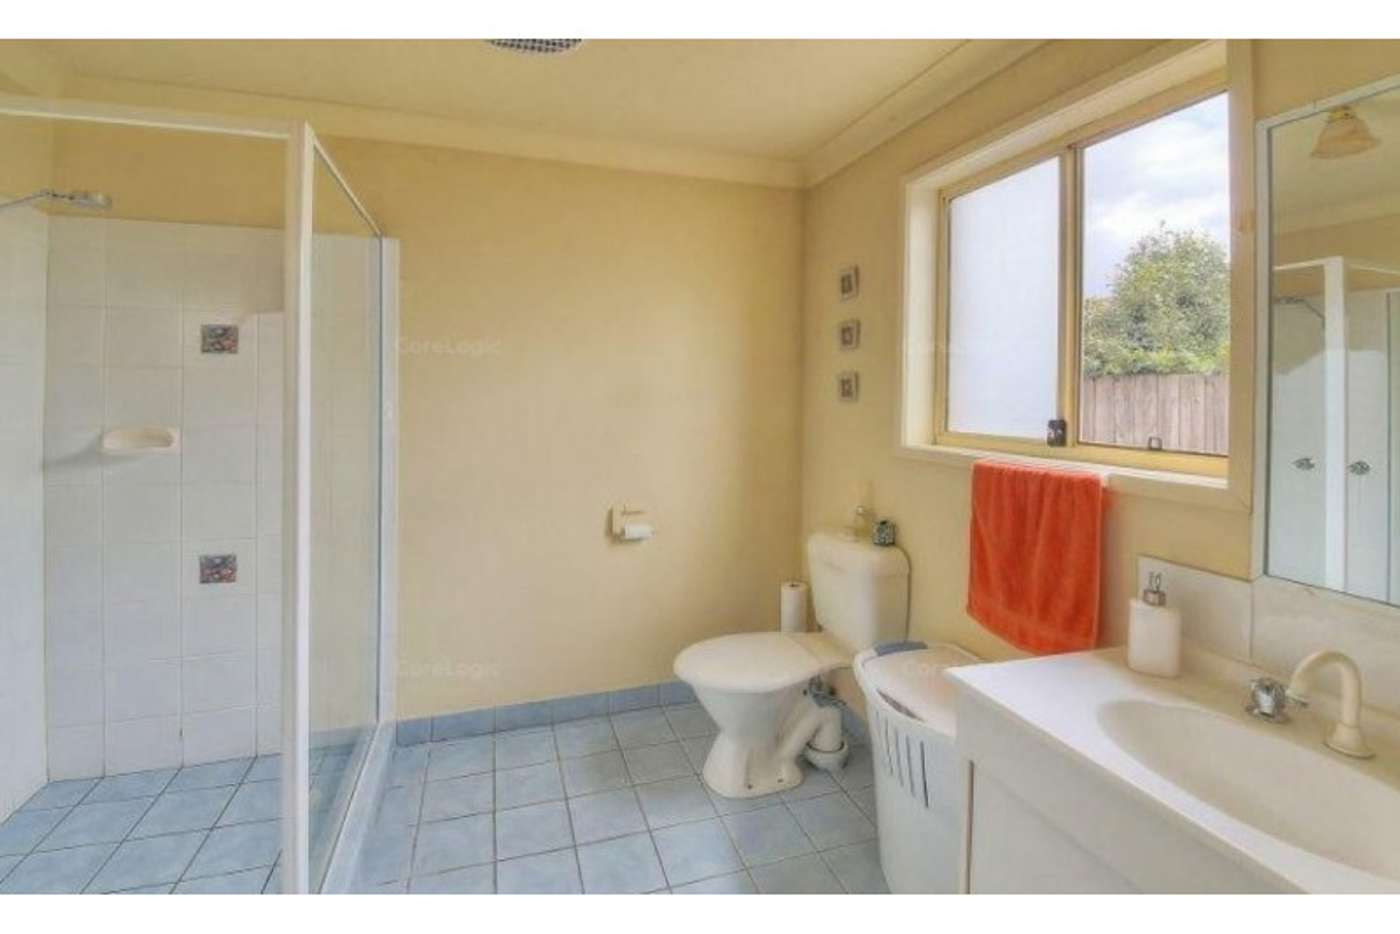 Sixth view of Homely house listing, 10 Wisdom Way, Crestmead QLD 4132